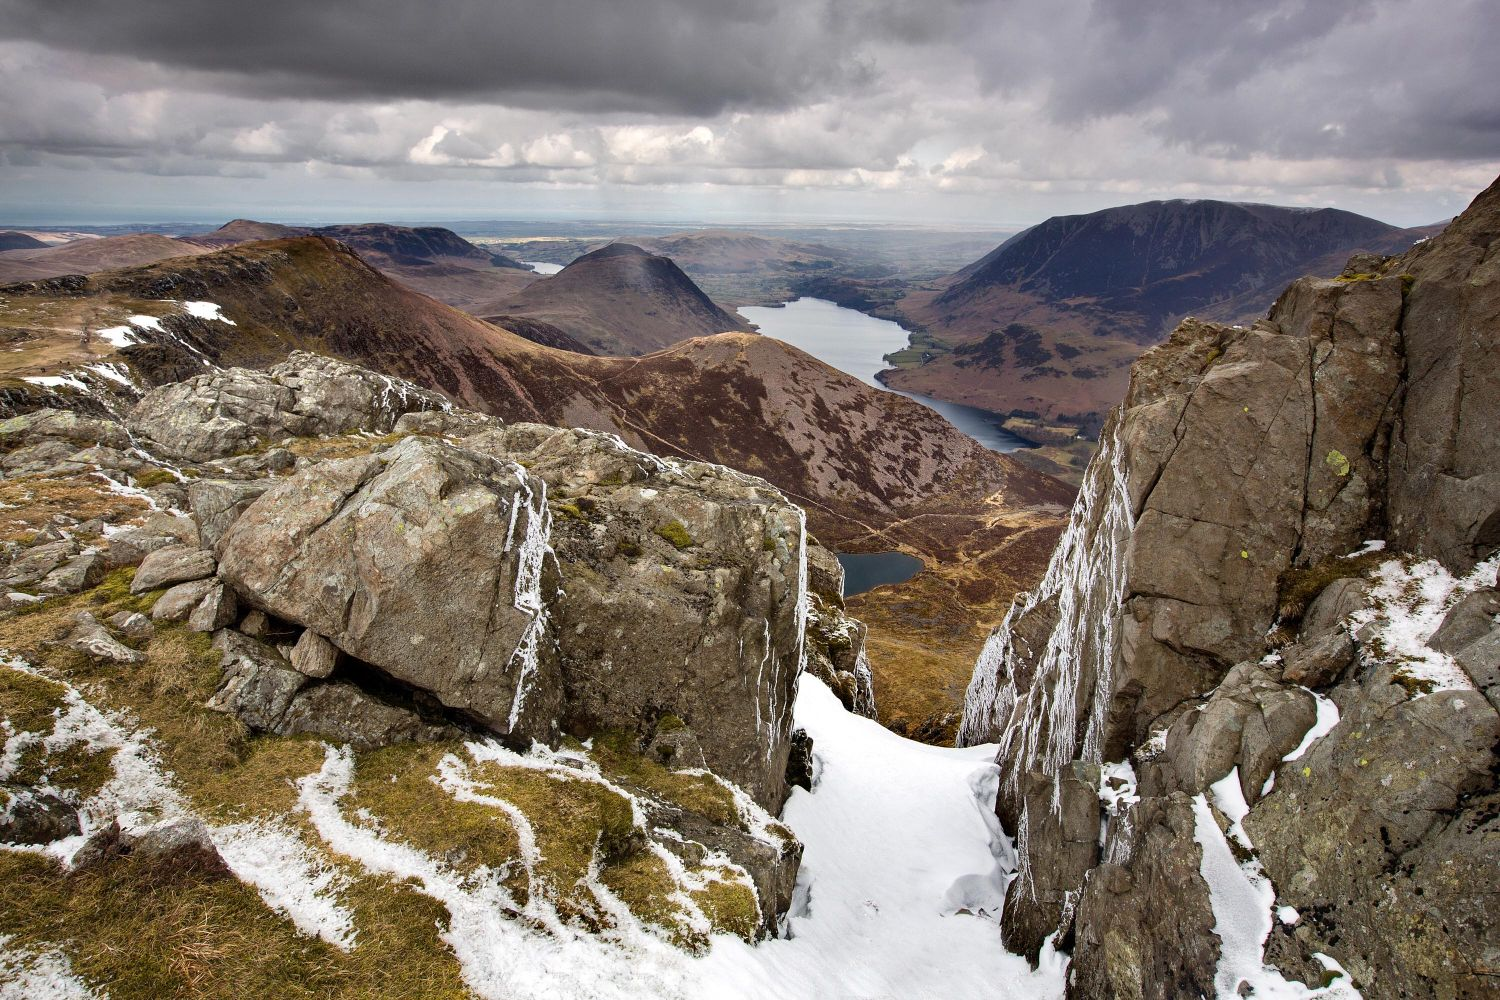 Chapel Crags Gulley looking down to Bleaberry Tarn